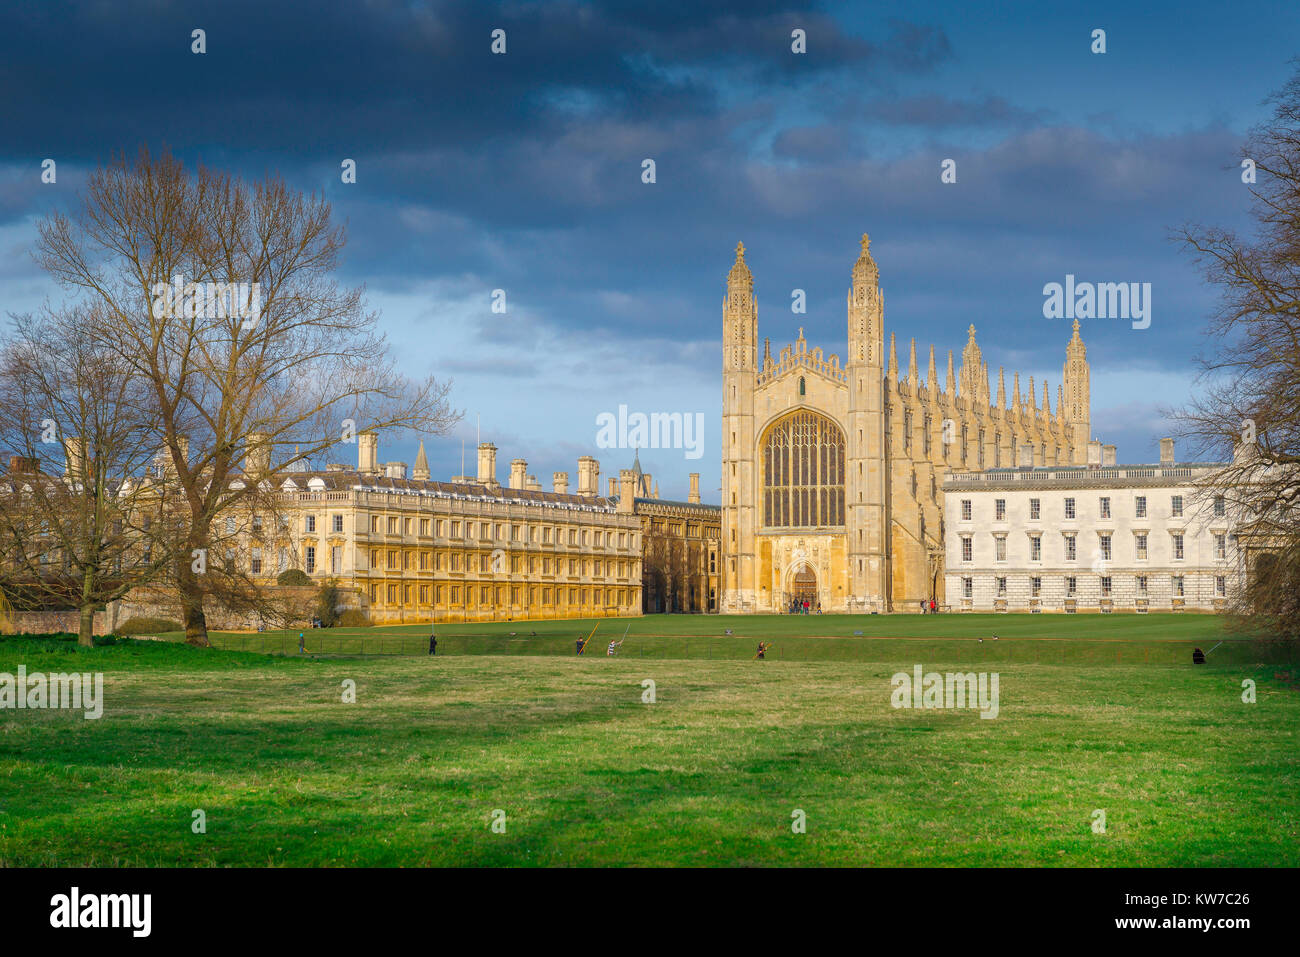 King's College Cambridge, view from the Backs (water meadow) towards the western end of King's College Chapel - Stock Image